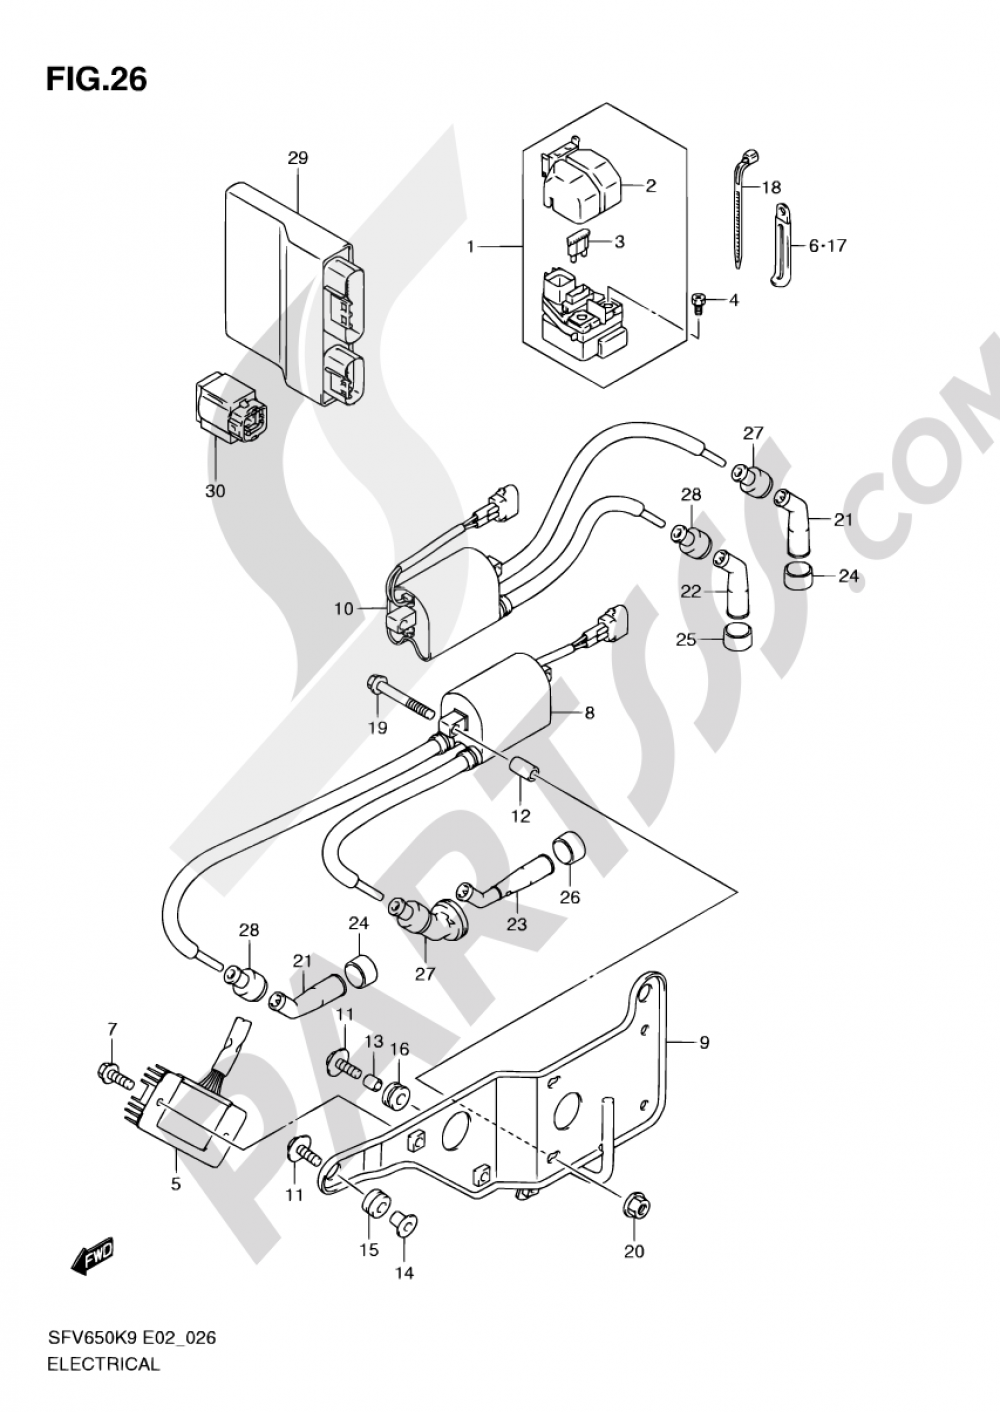 Suzuki Sfv650 Headlight Wiring Diagram